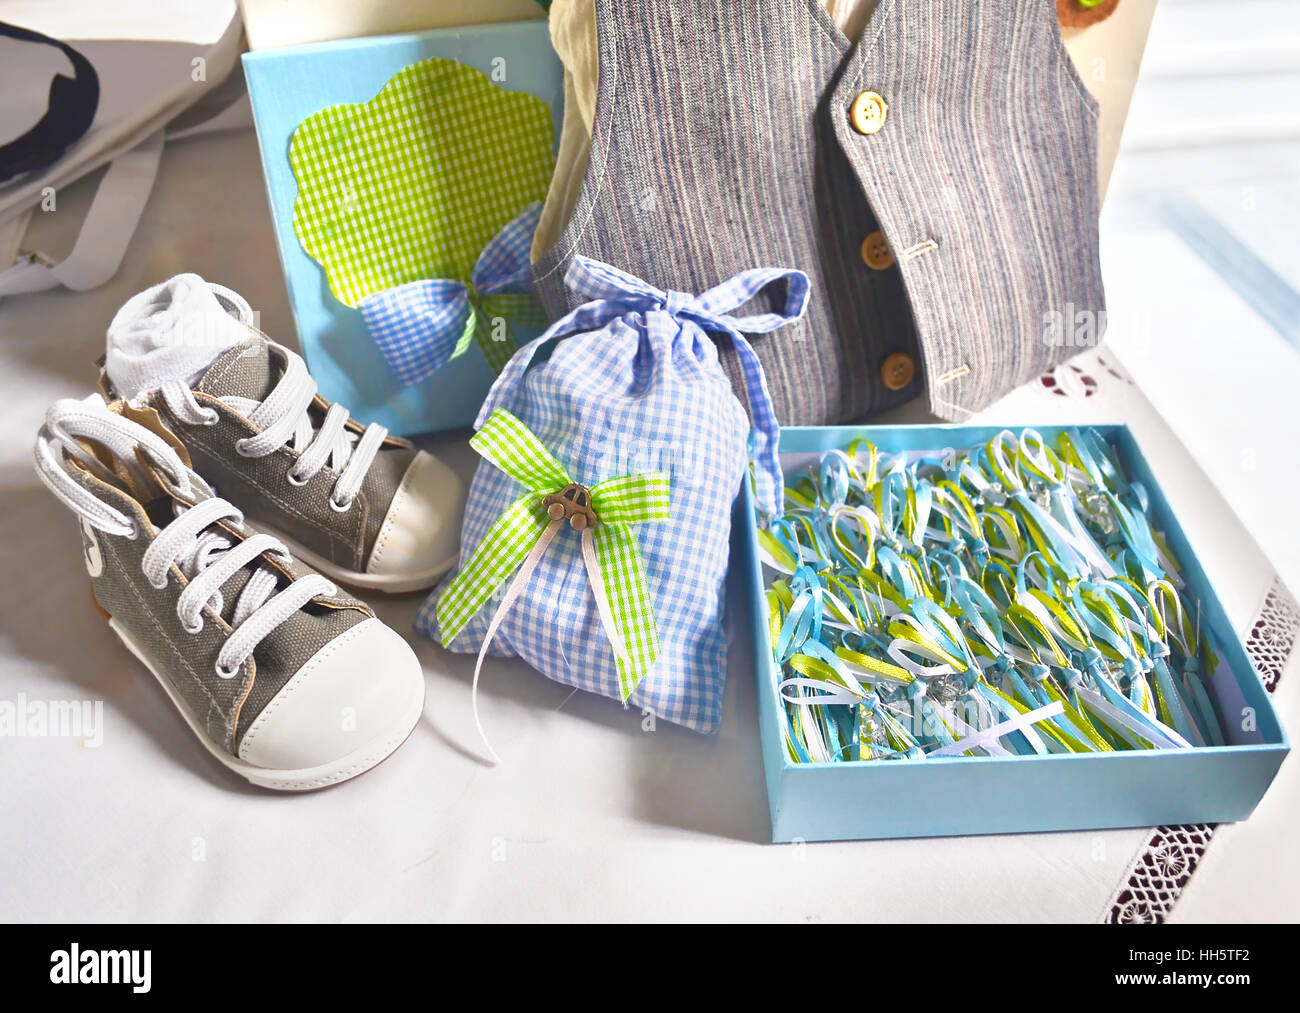 greek Orthodox christening clothes and favors - Stock Image